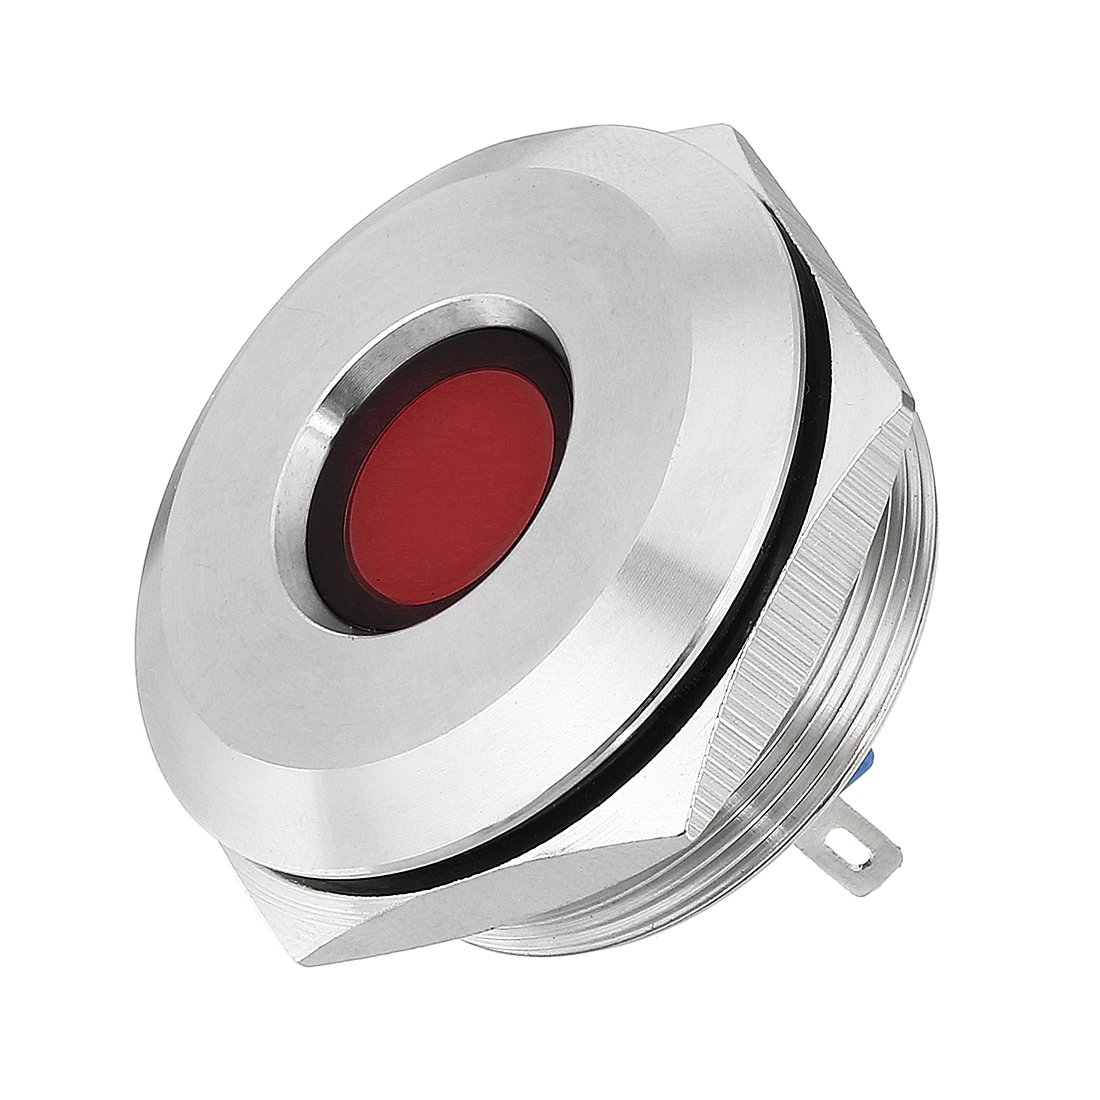 uxcell LED Indicator Light 12V 30mm Red Pilot Custom Dash Signal Lamp Concave Head